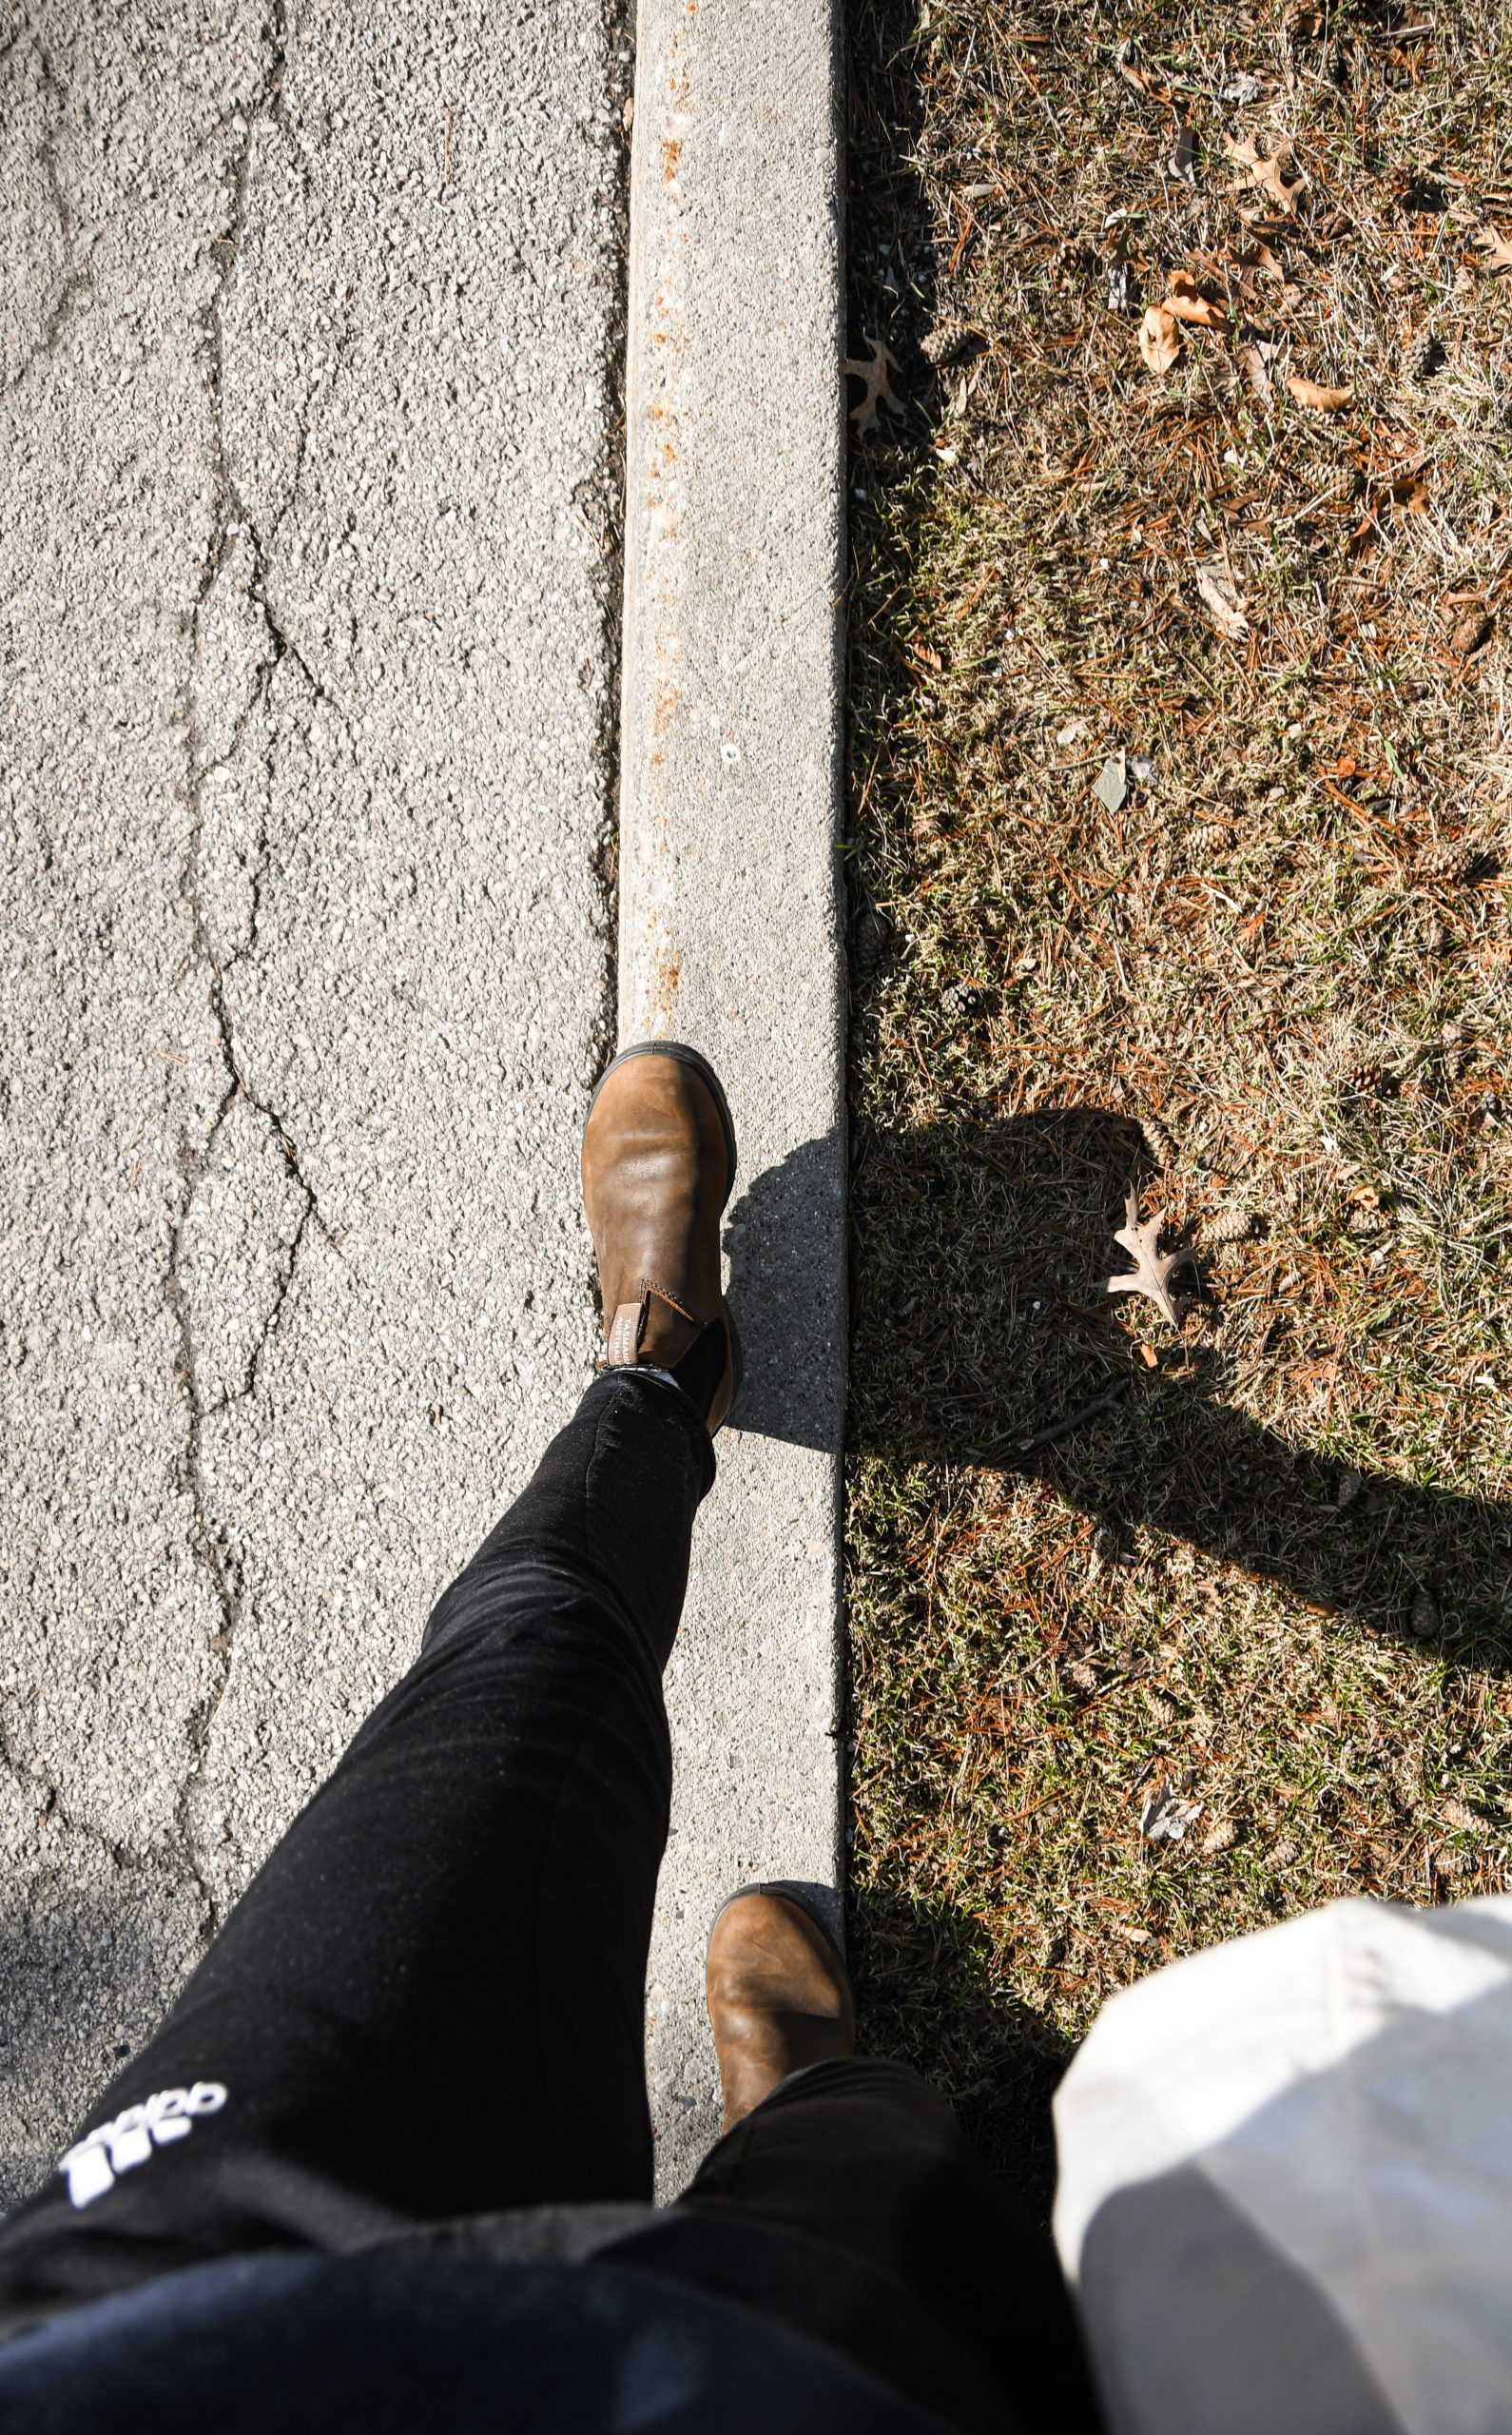 Image is of a person in blundstones walking